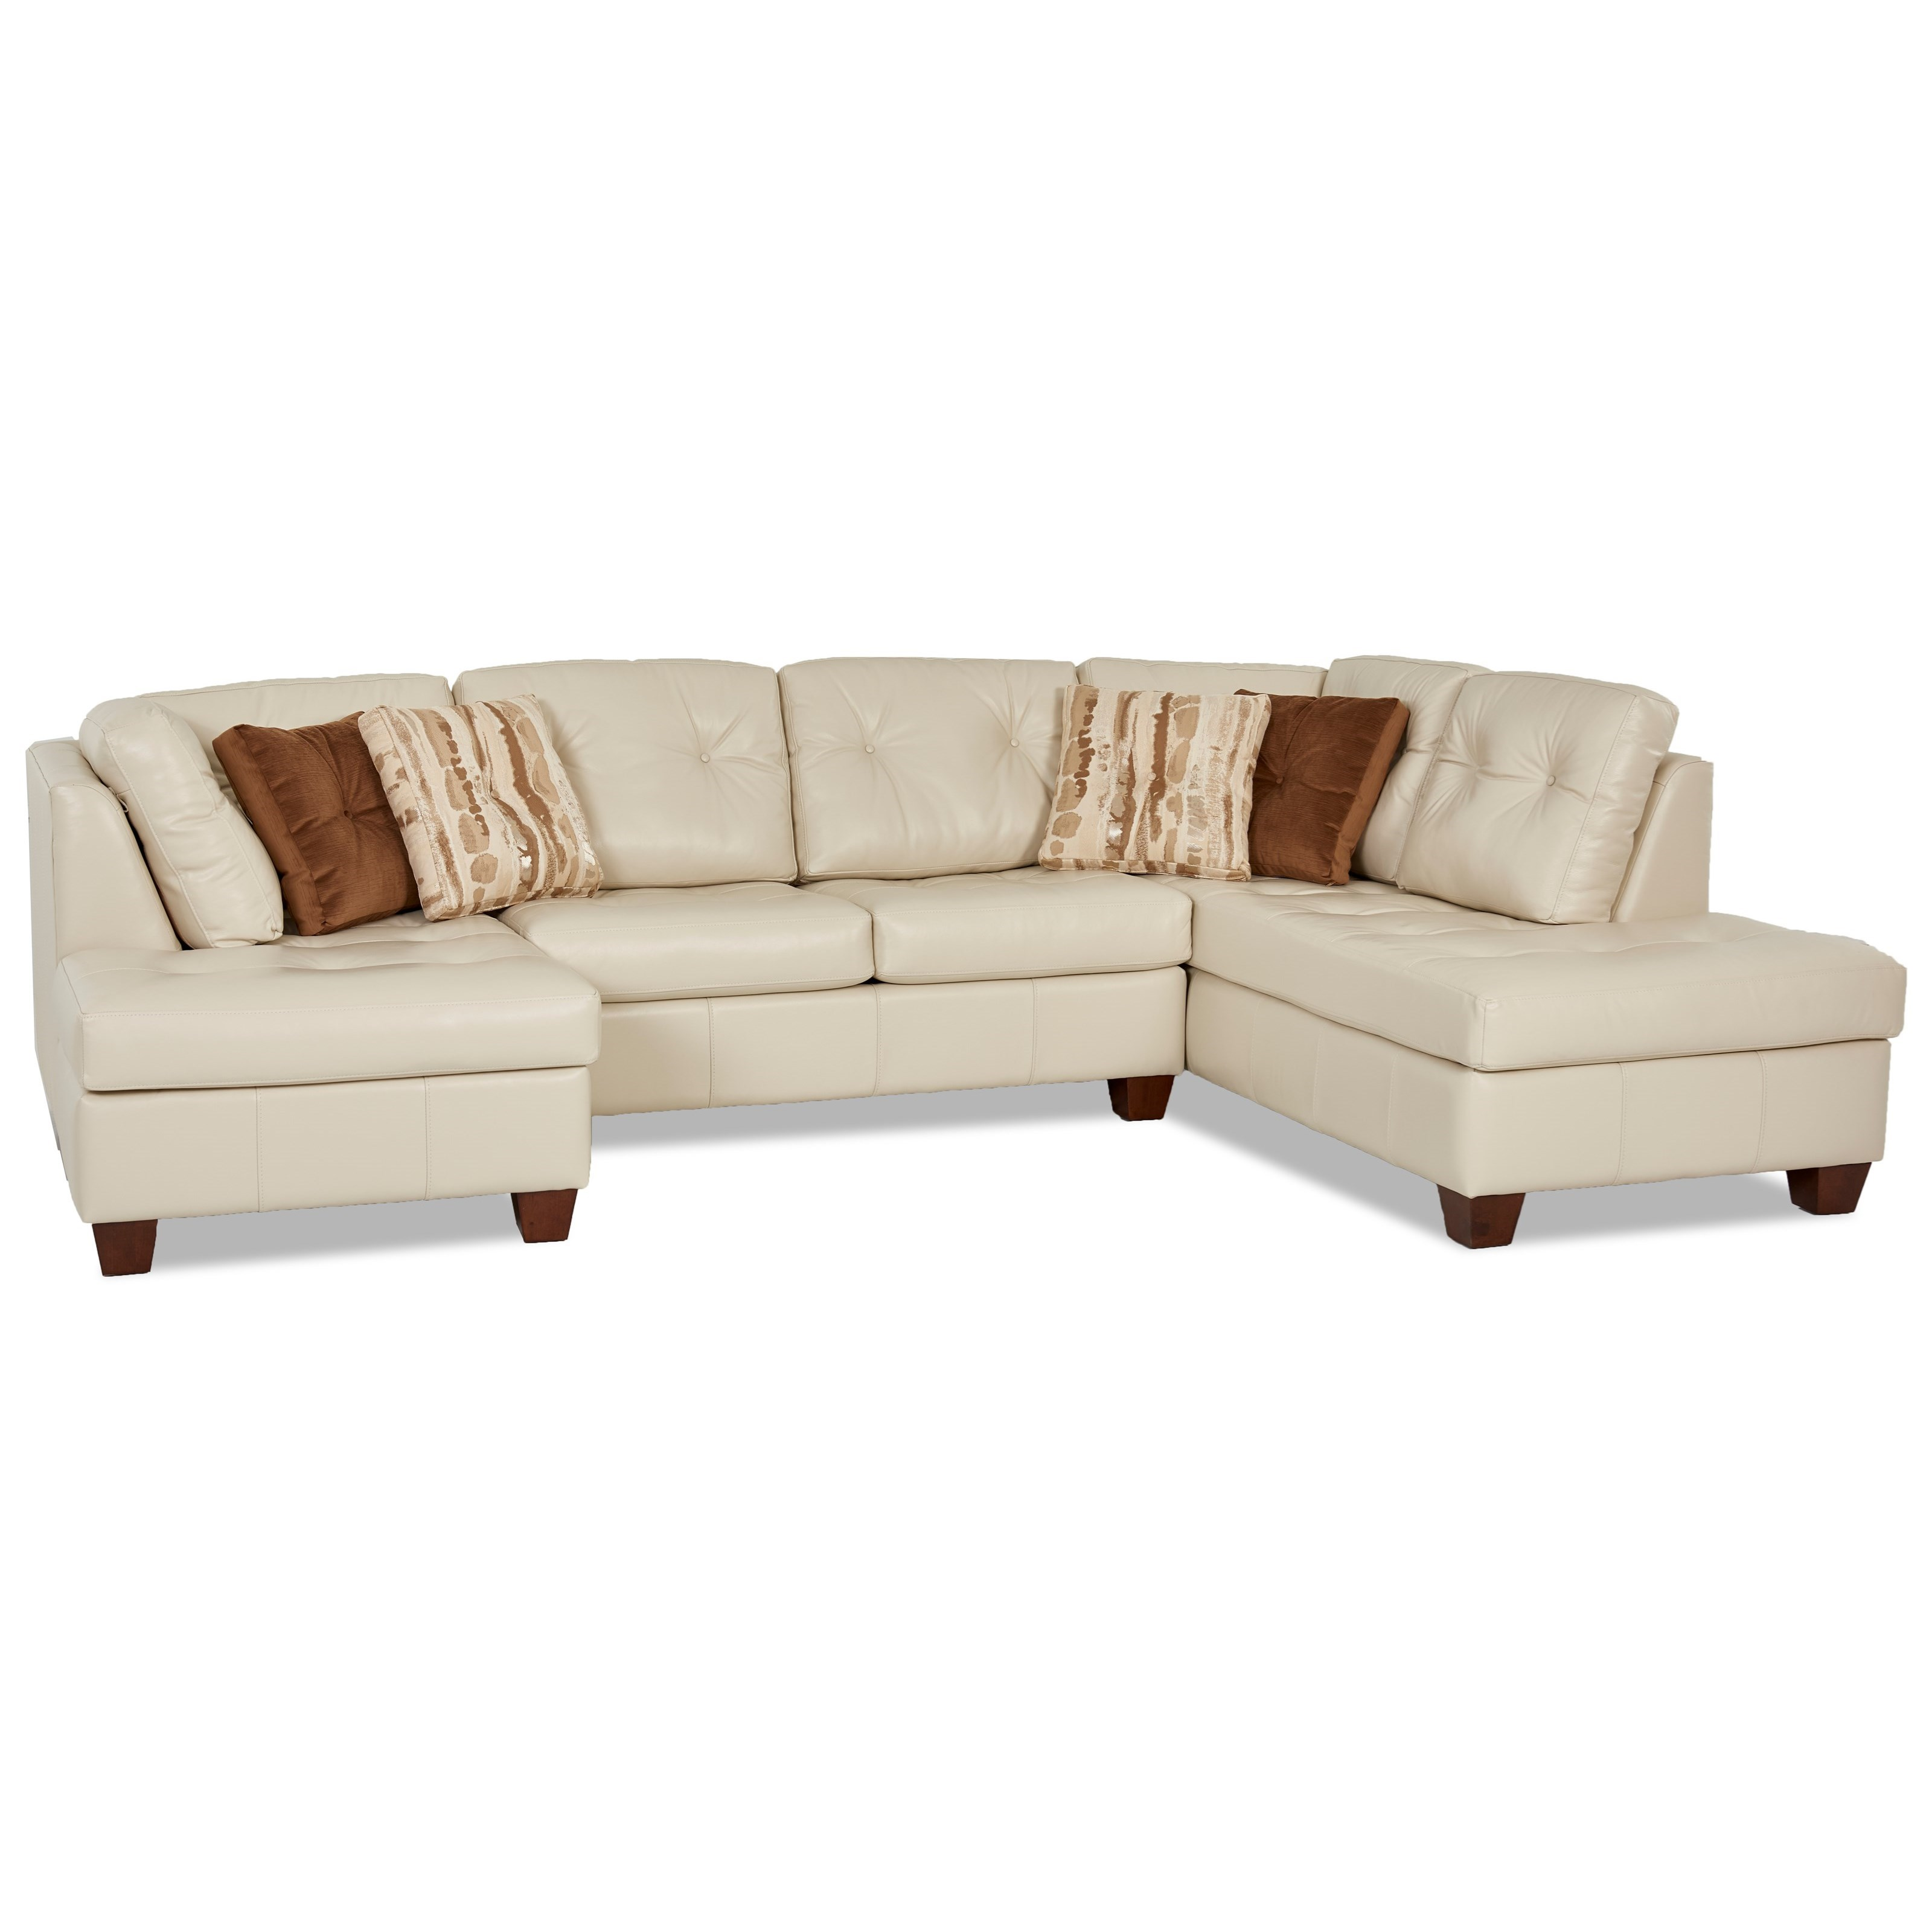 Klaussner Barton 3 Piece Sectional with Tufted Seats Wayside